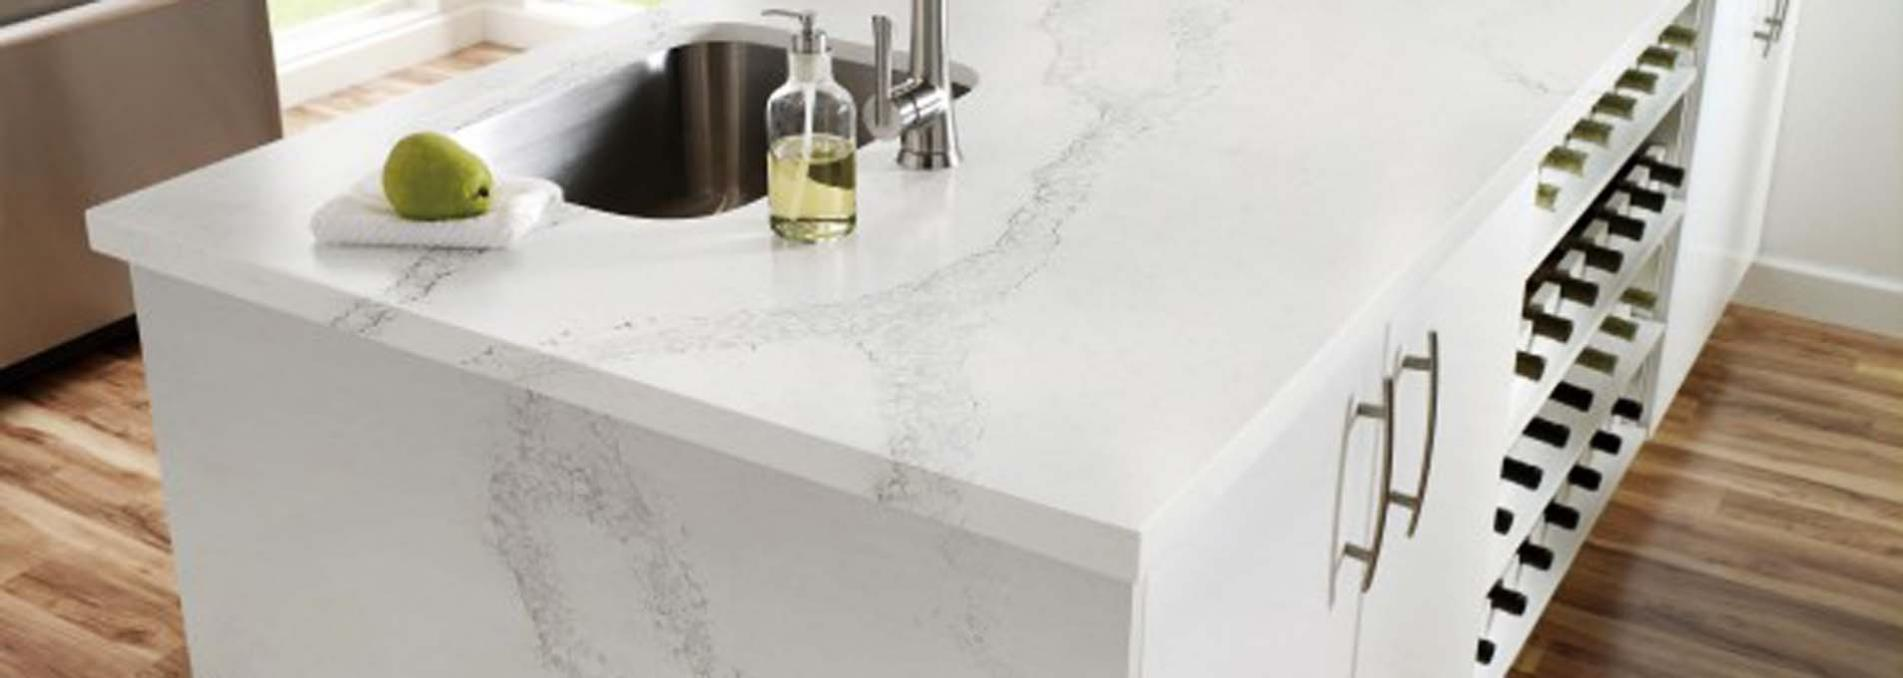 Ultra Hygenic Work Surfaces by